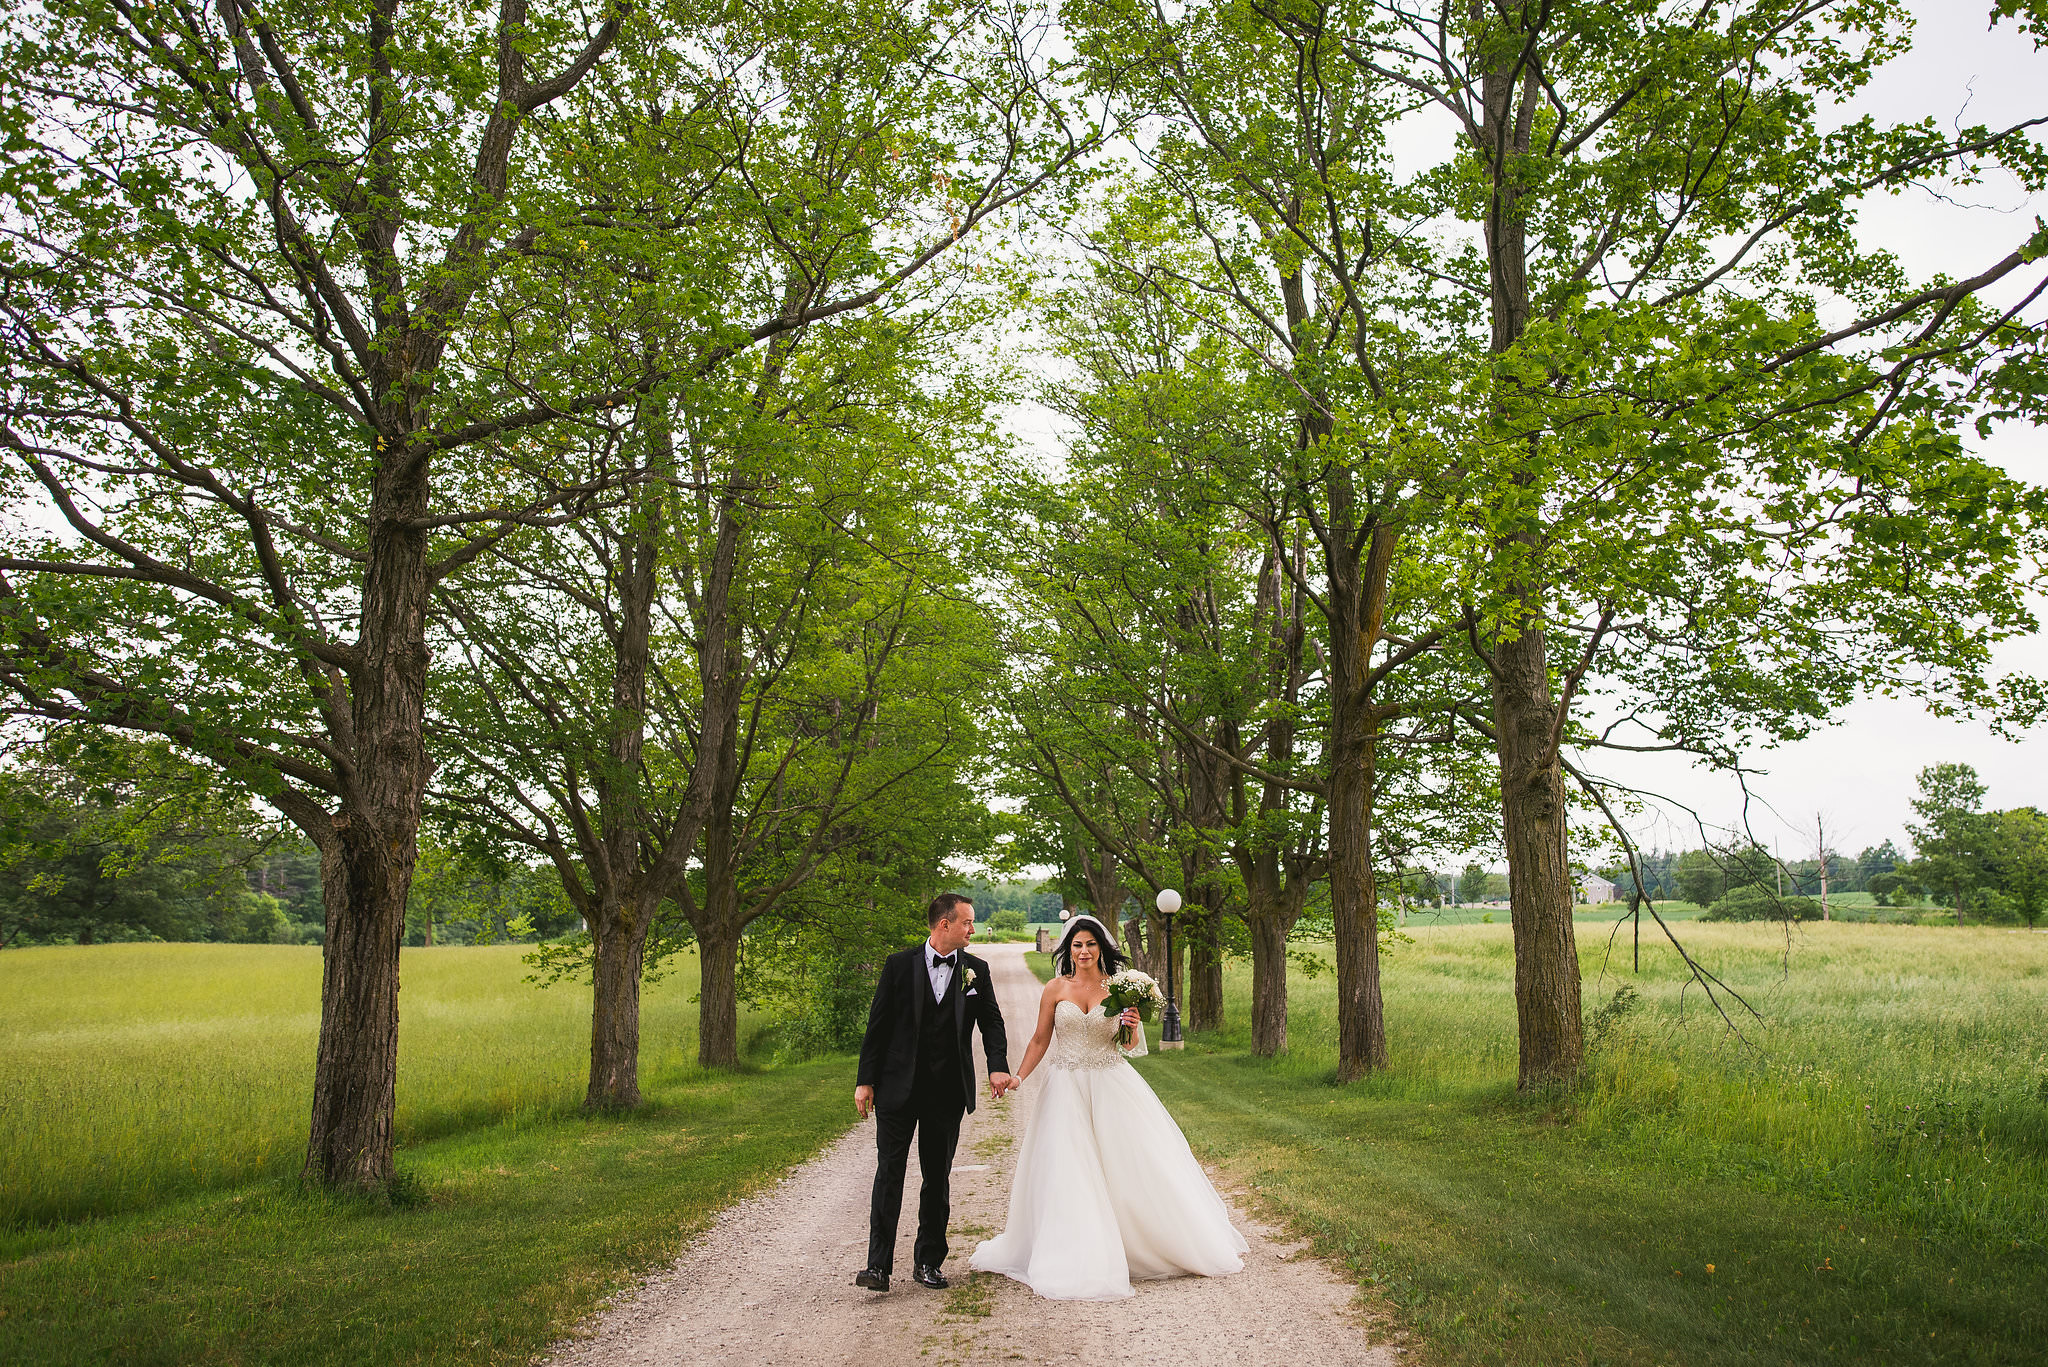 Marguerite Wayne Stoneacre Farm Puslinch Wedding Photos 226 - Stoneacre Farm Wedding